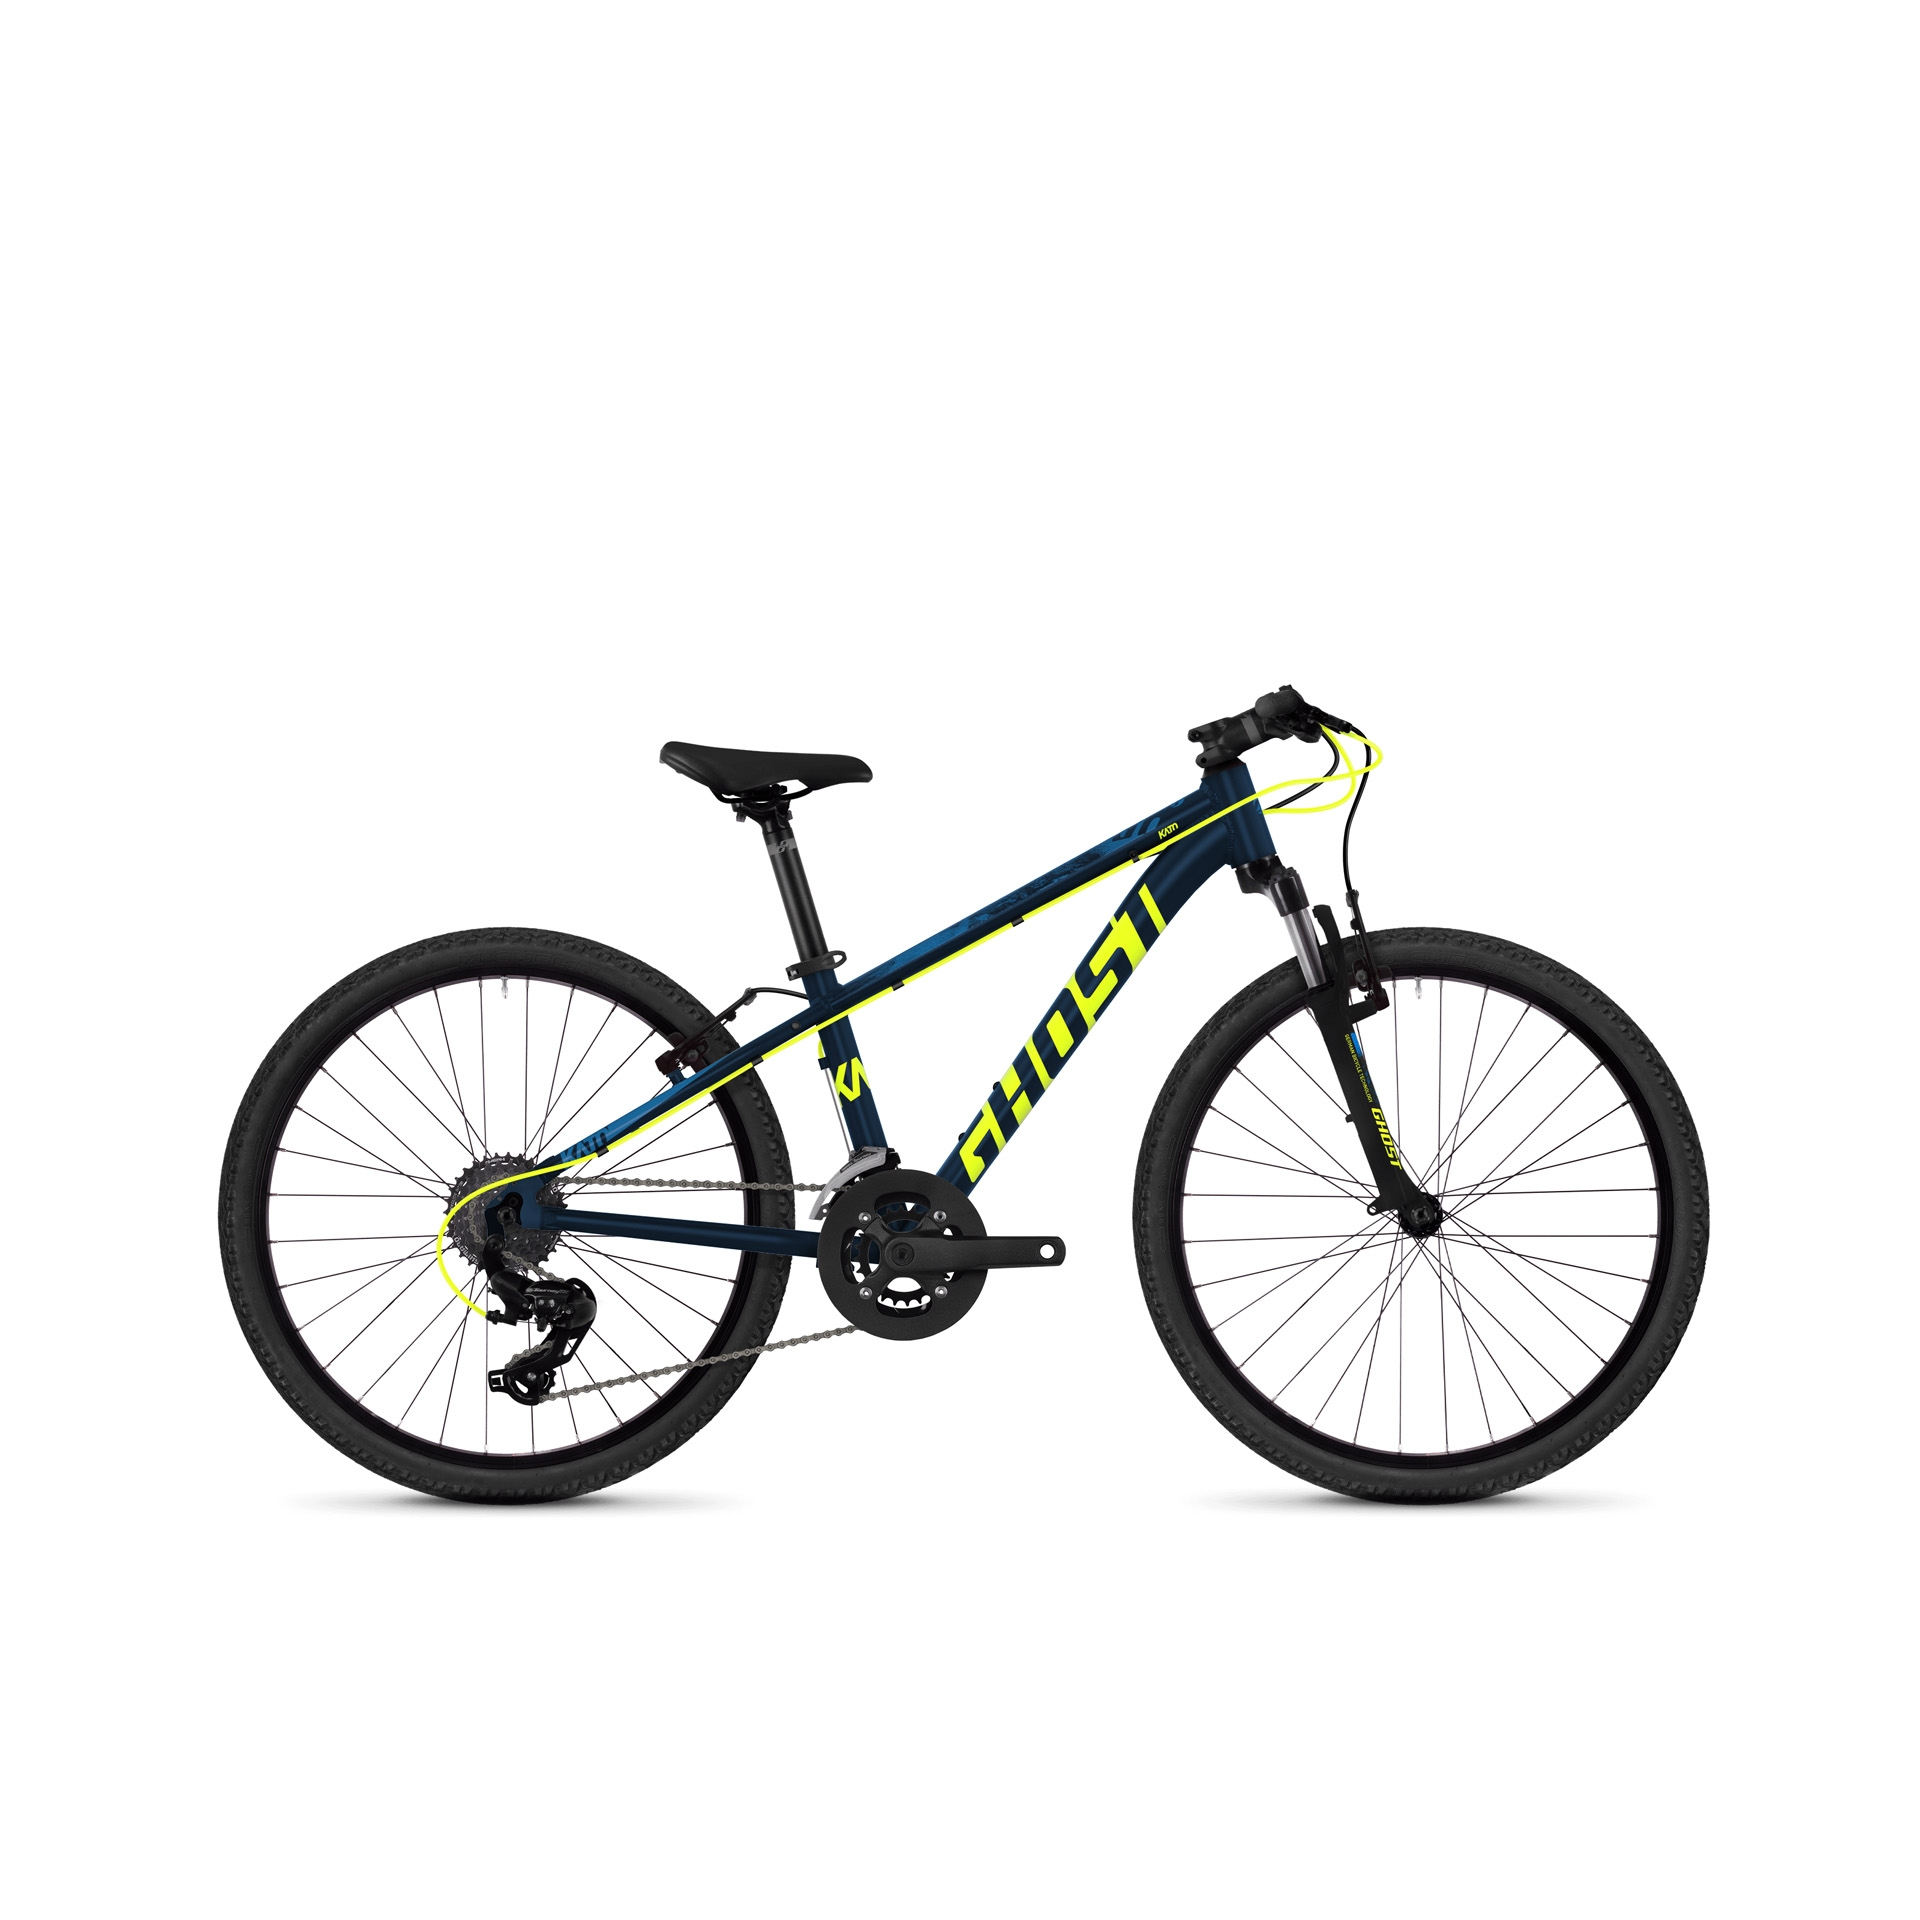 VTT semi-rigide Ghost Kato Kid 2.4 24 Bleu/Jaune